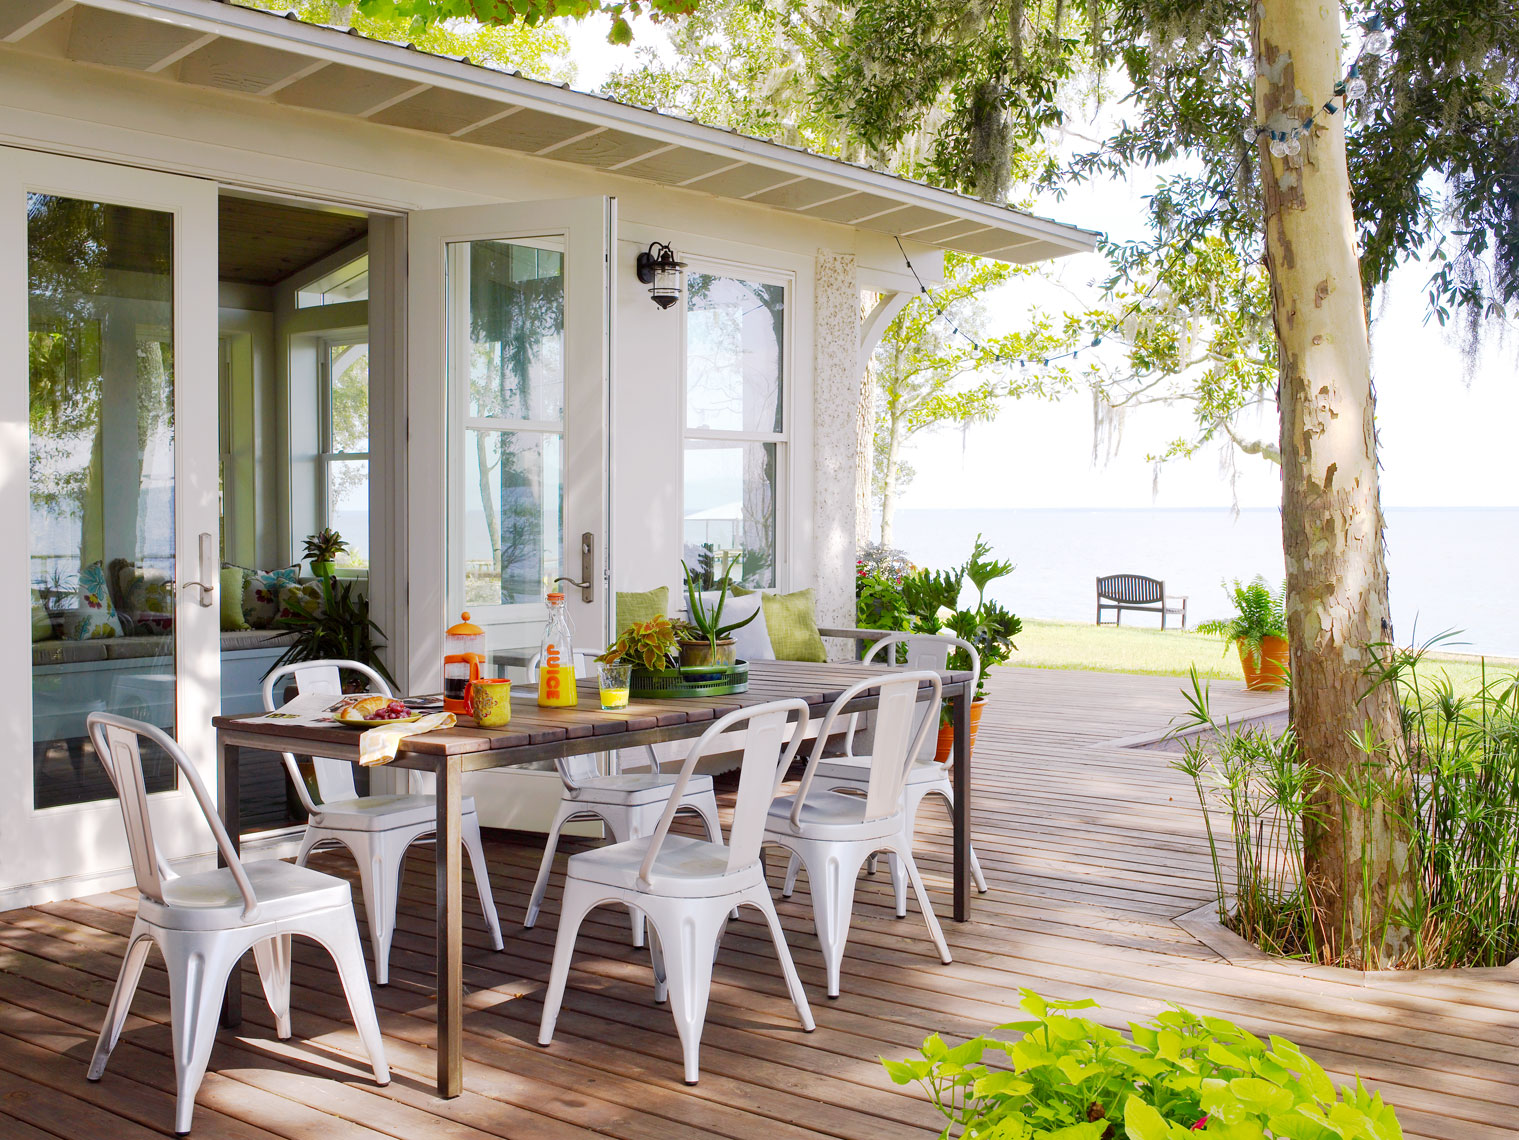 HGTV_Brooks_FL_OutdoorDining-0011Retouched_APF